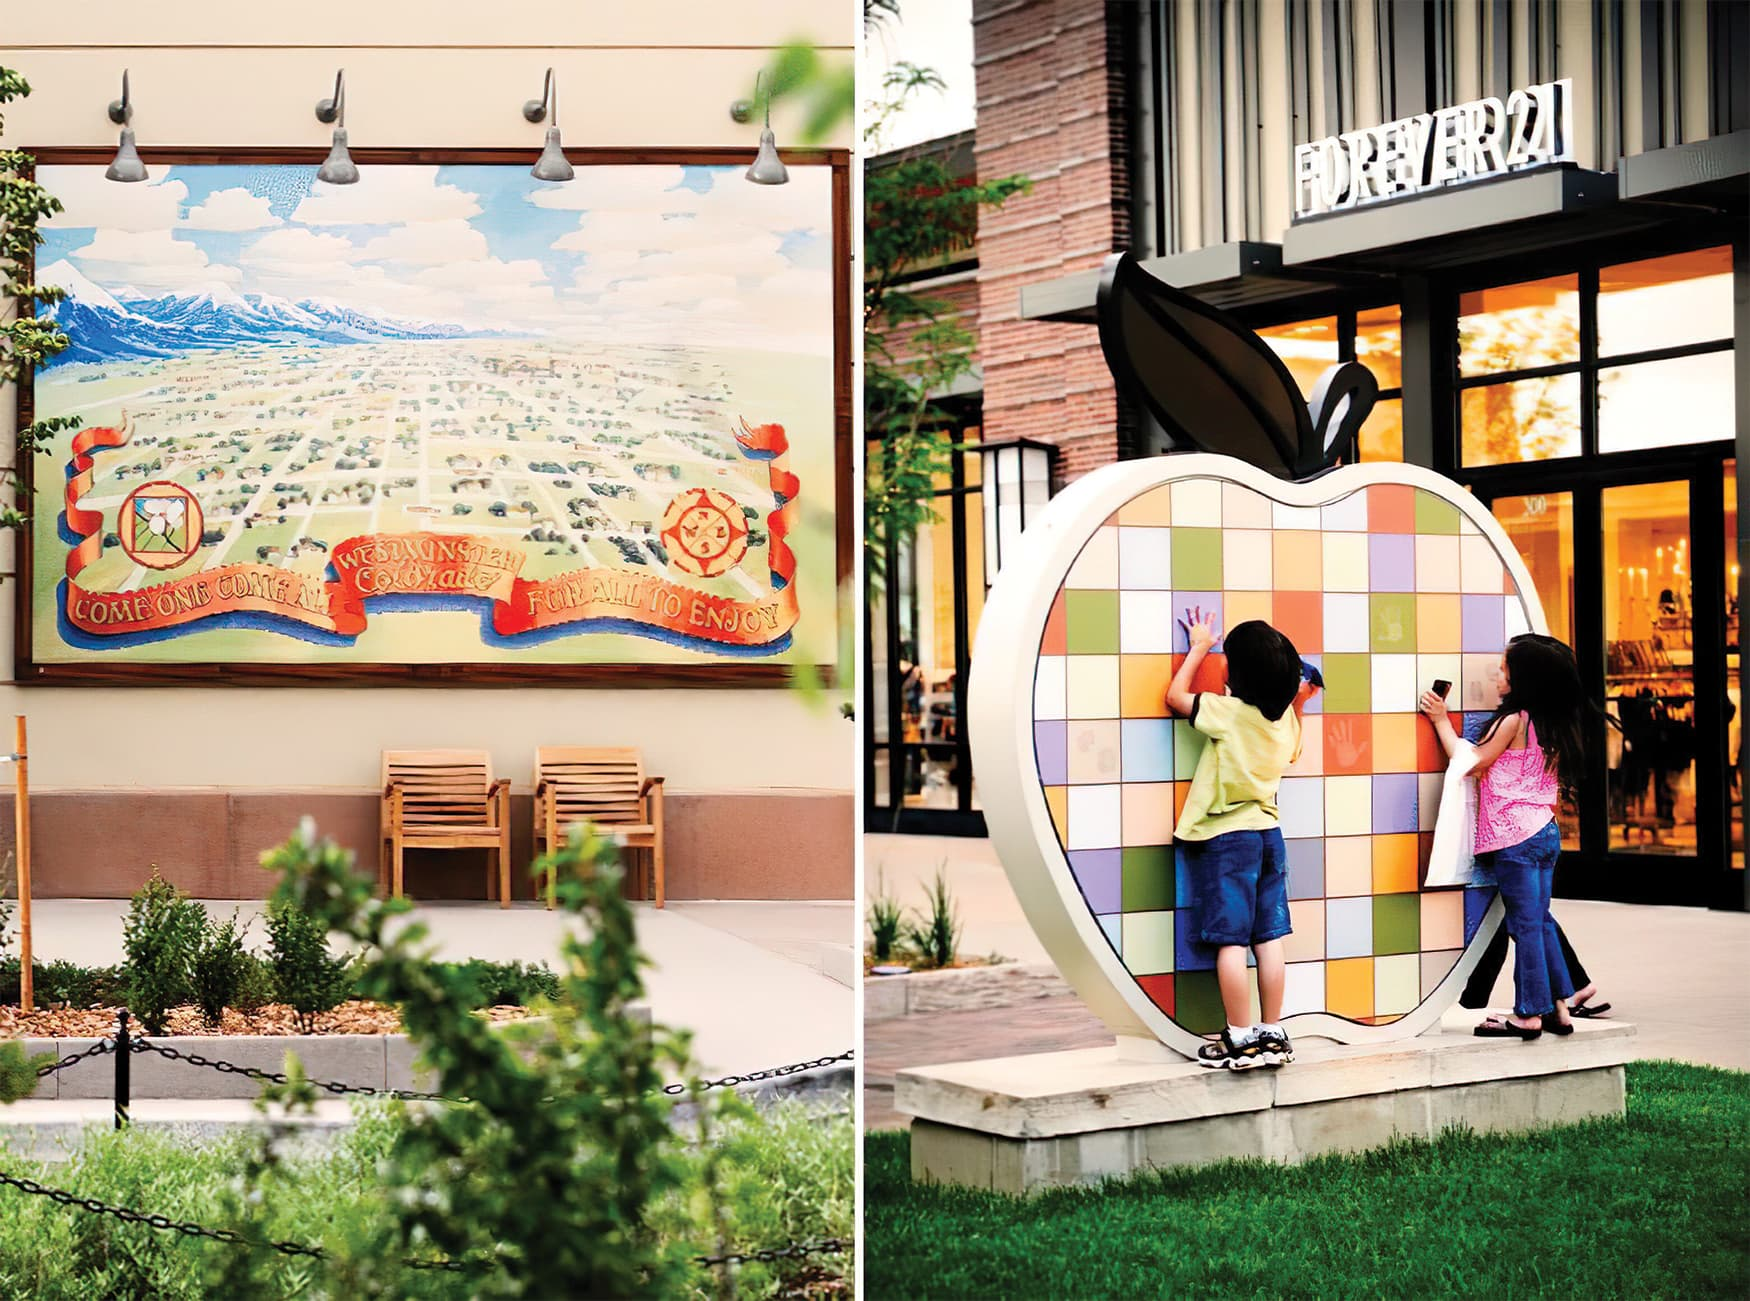 RSM Design worked to create a wayfinding system and Environmental Graphic Design program for The Orchard, a mixed-use retail project in Westminster, Colorado.